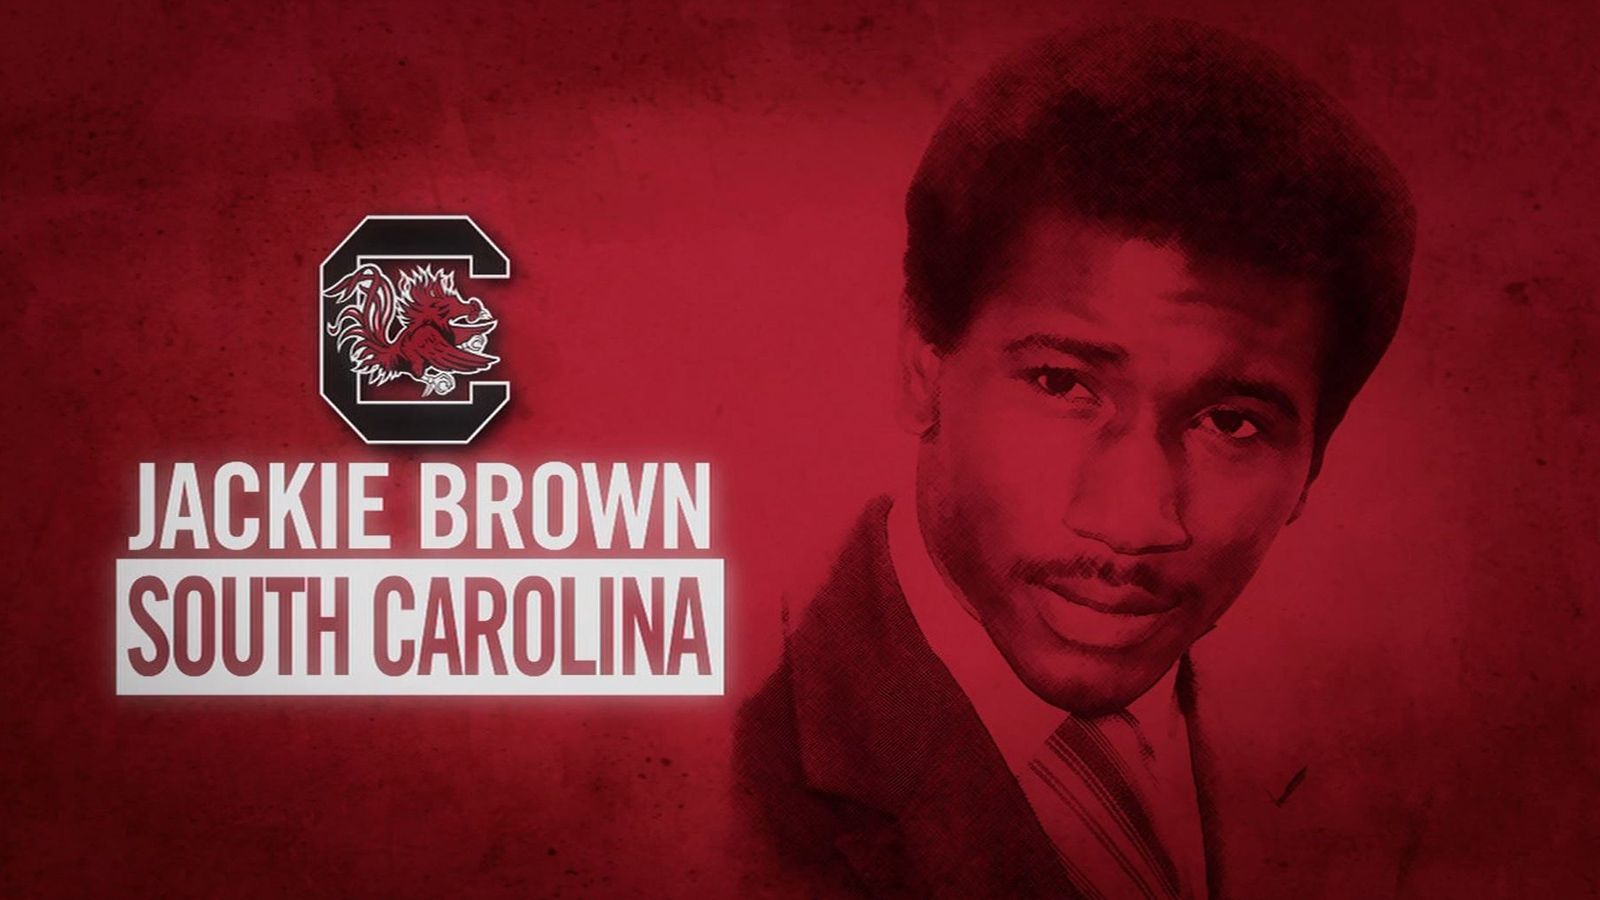 SEC celebrates Black History Month: South Carolina